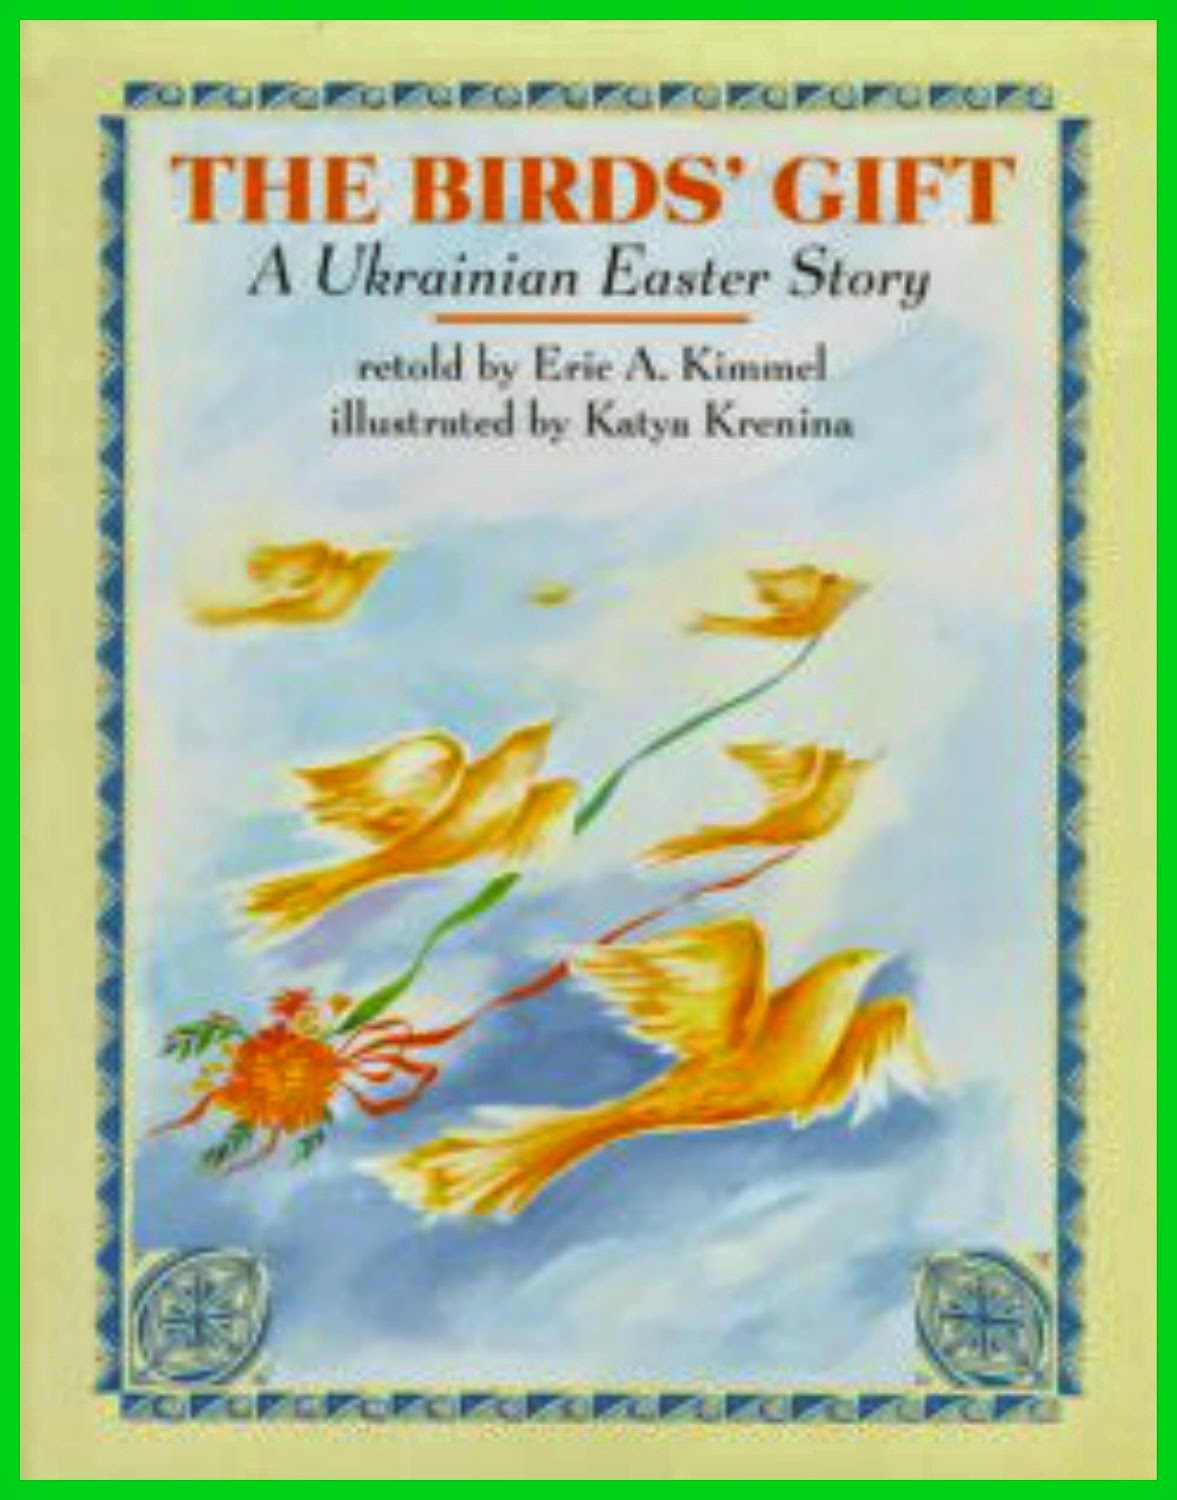 Crafty moms share easter around the world ukraine russia to go with our study of easter in ukraine we read the birds gift a ukrainian easter story retold by eric a kimmel this is a wonderful story of a girl negle Choice Image